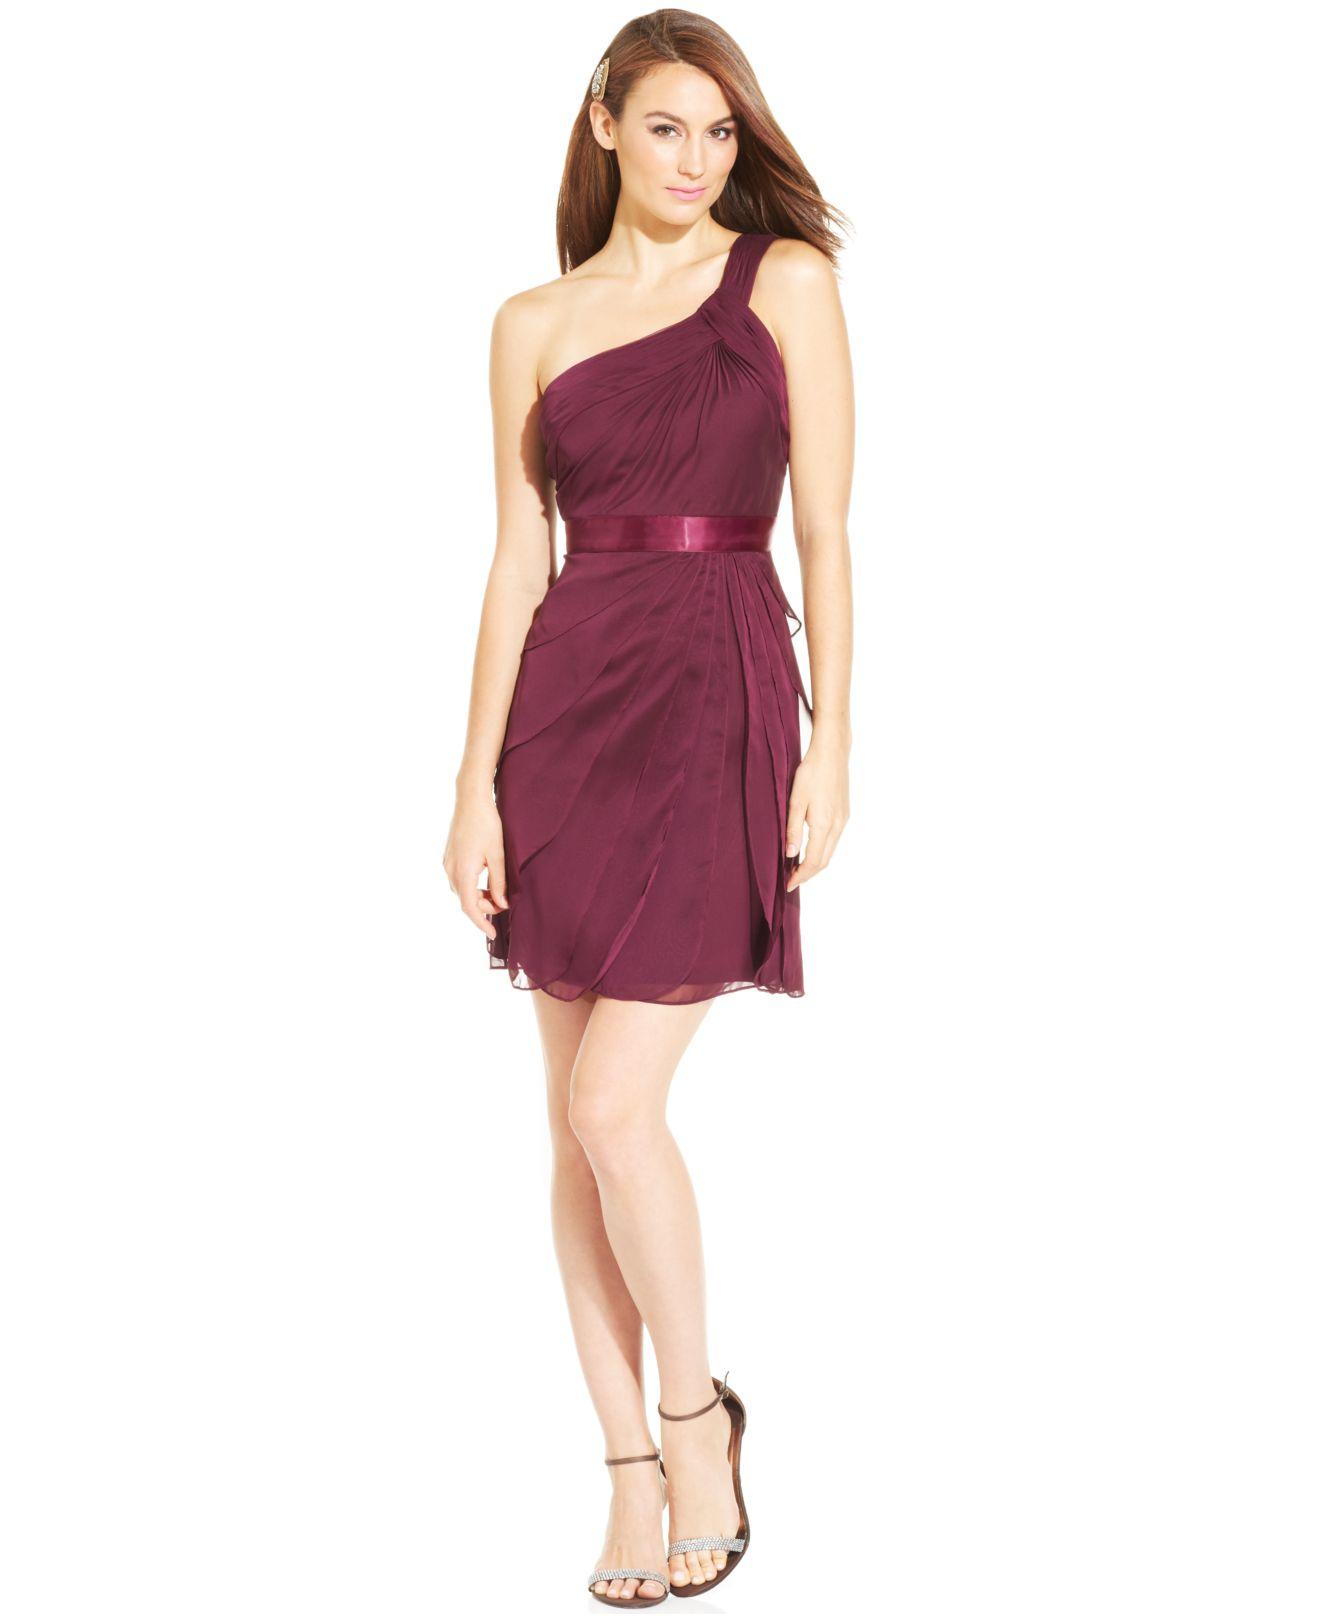 Lyst - Adrianna Papell One-Shoulder Tiered Chiffon Dress in Purple